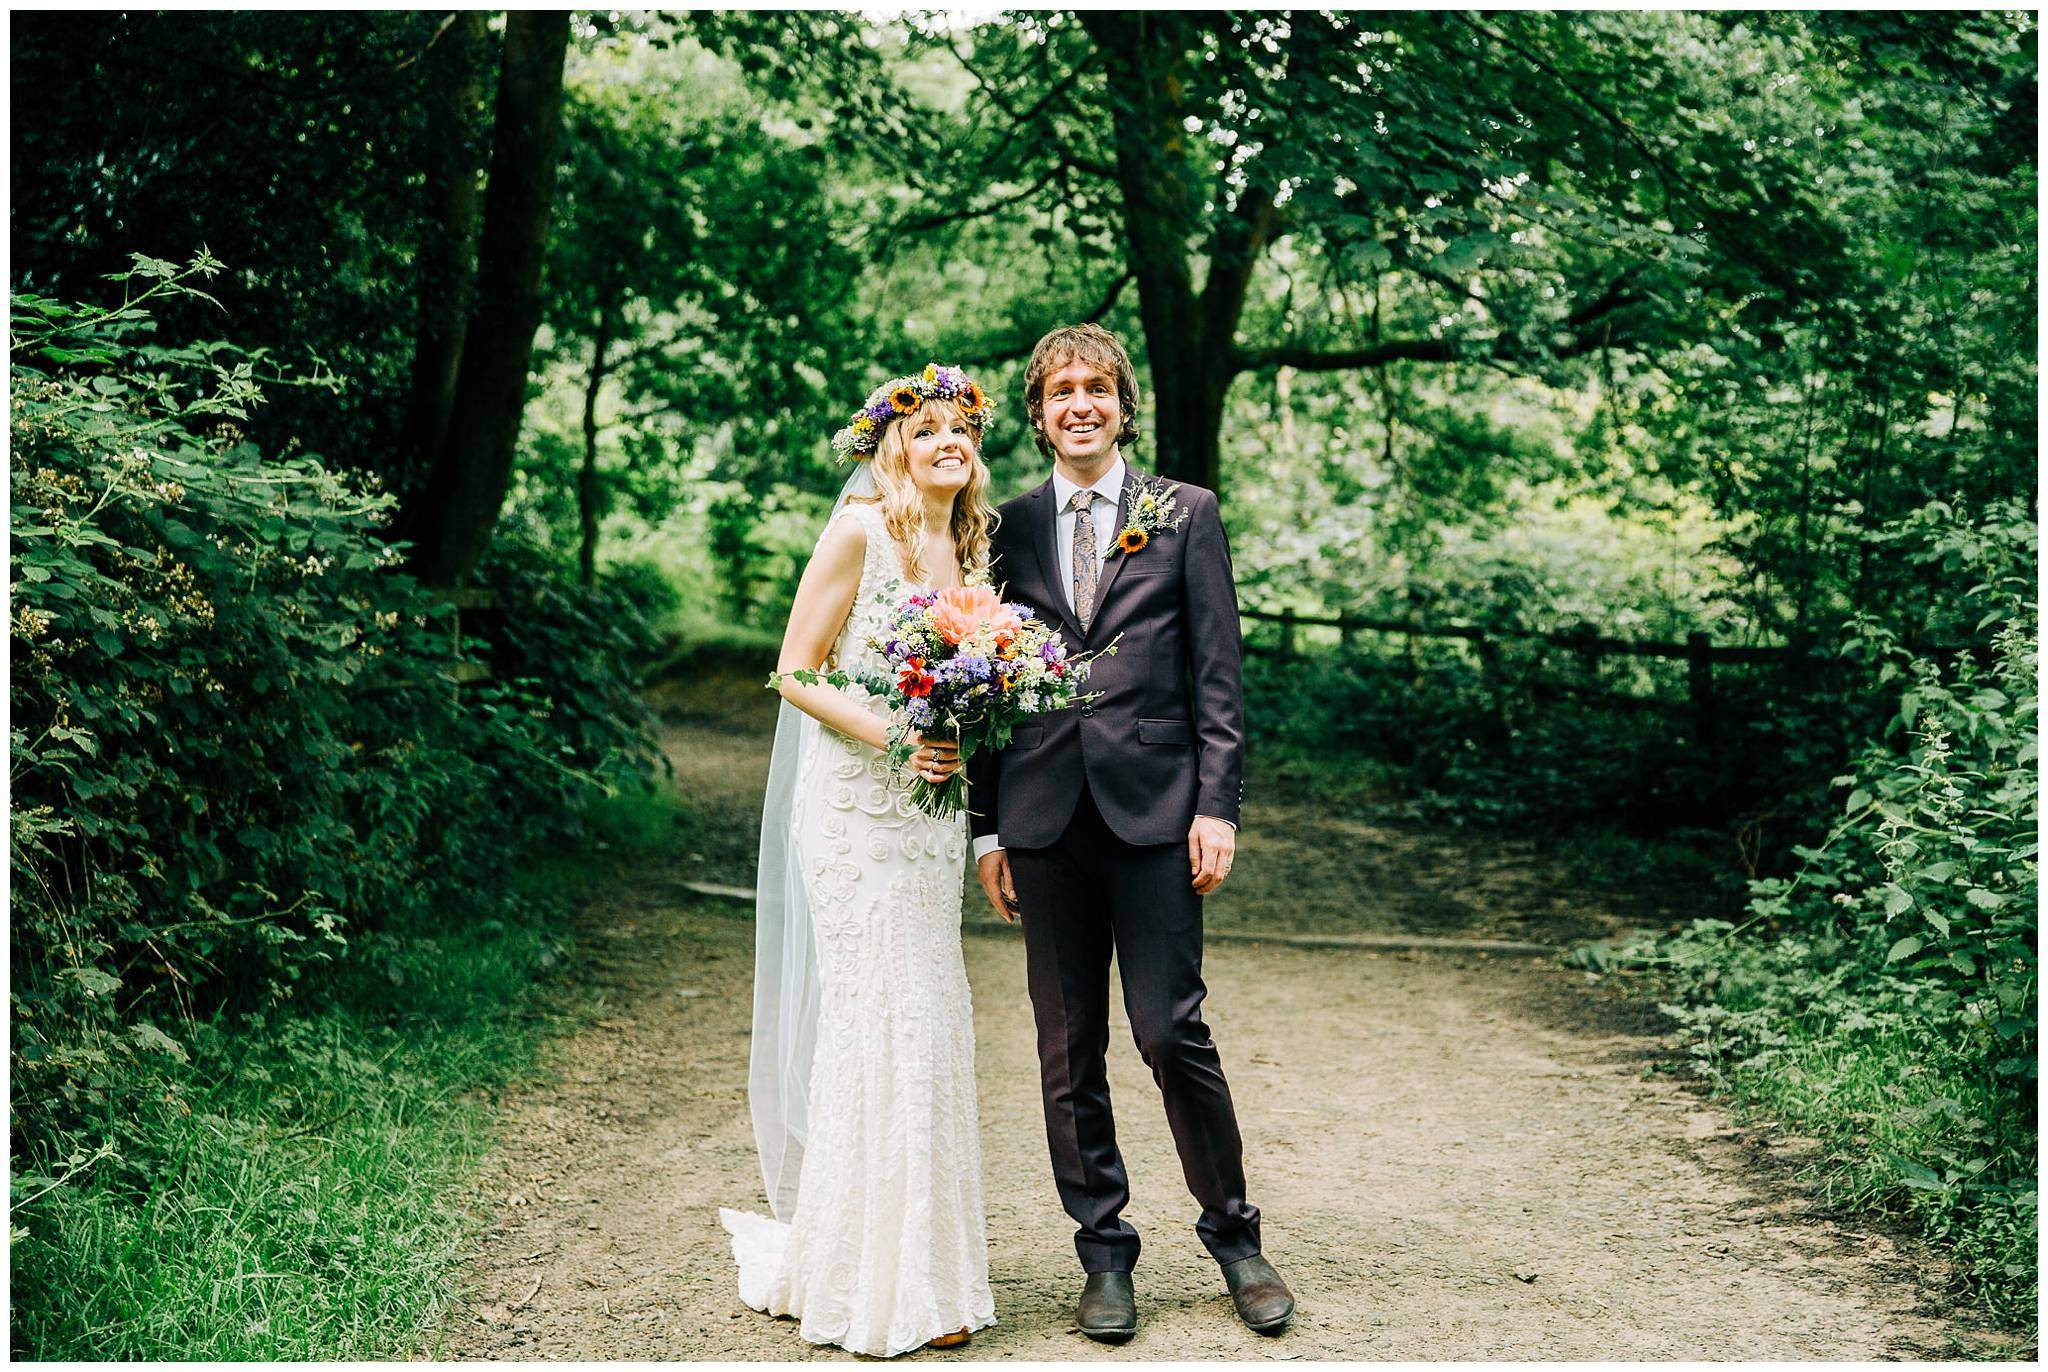 bride and groom stood in woodland setting smiling